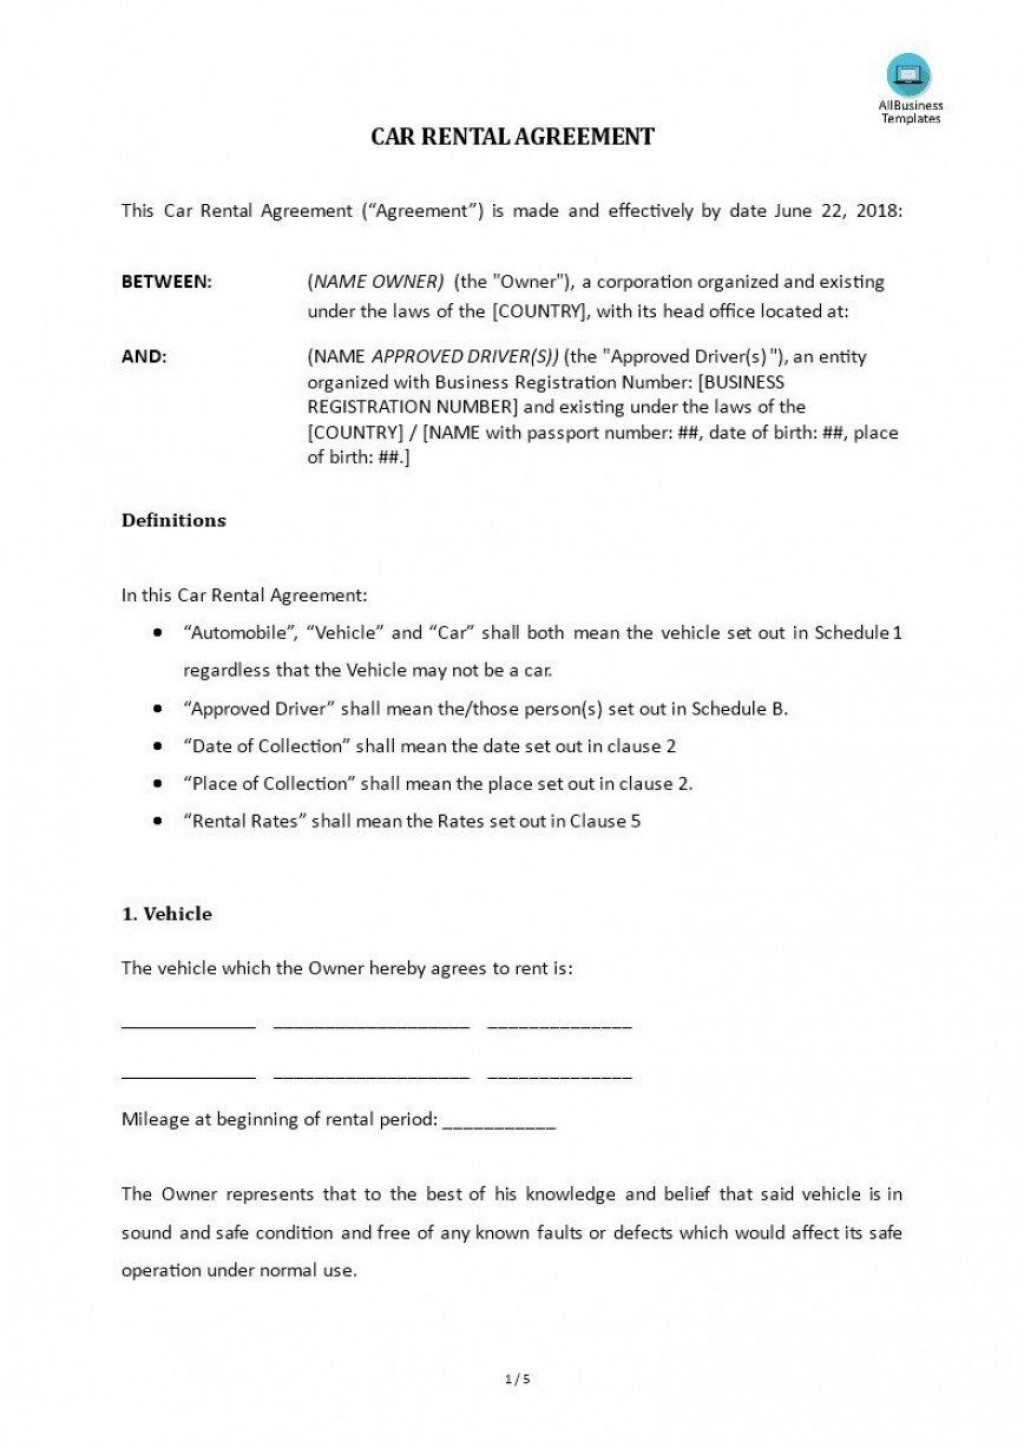 006 Impressive Template For Car Hire Agreement Highest Clarity Large